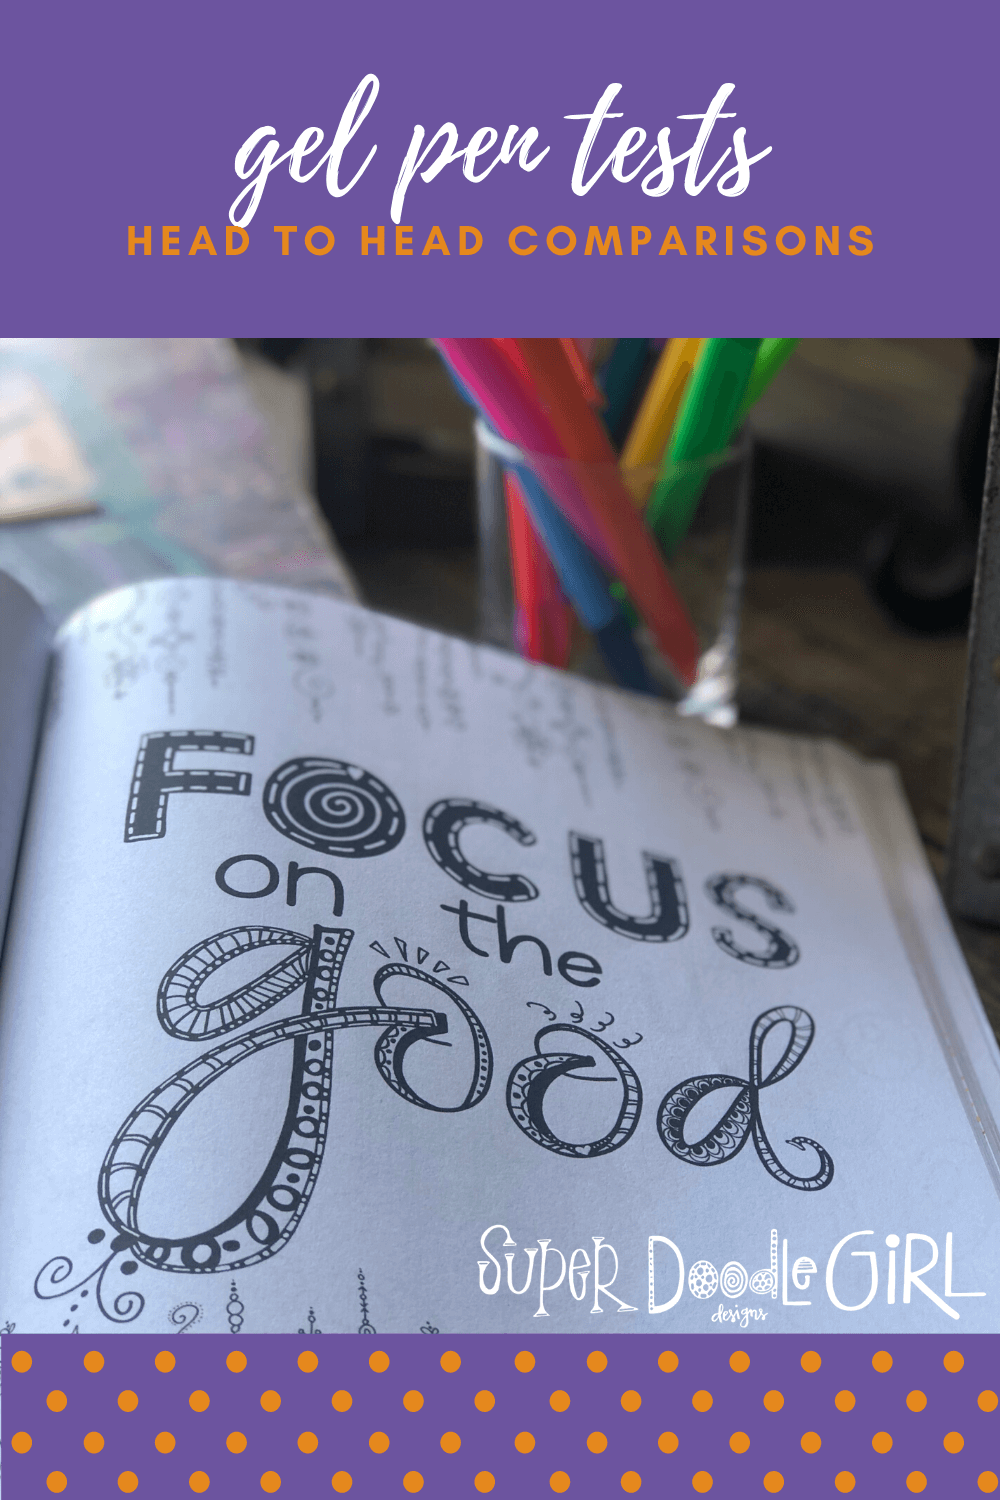 Focus on the Good coloring book page with a cup of pens